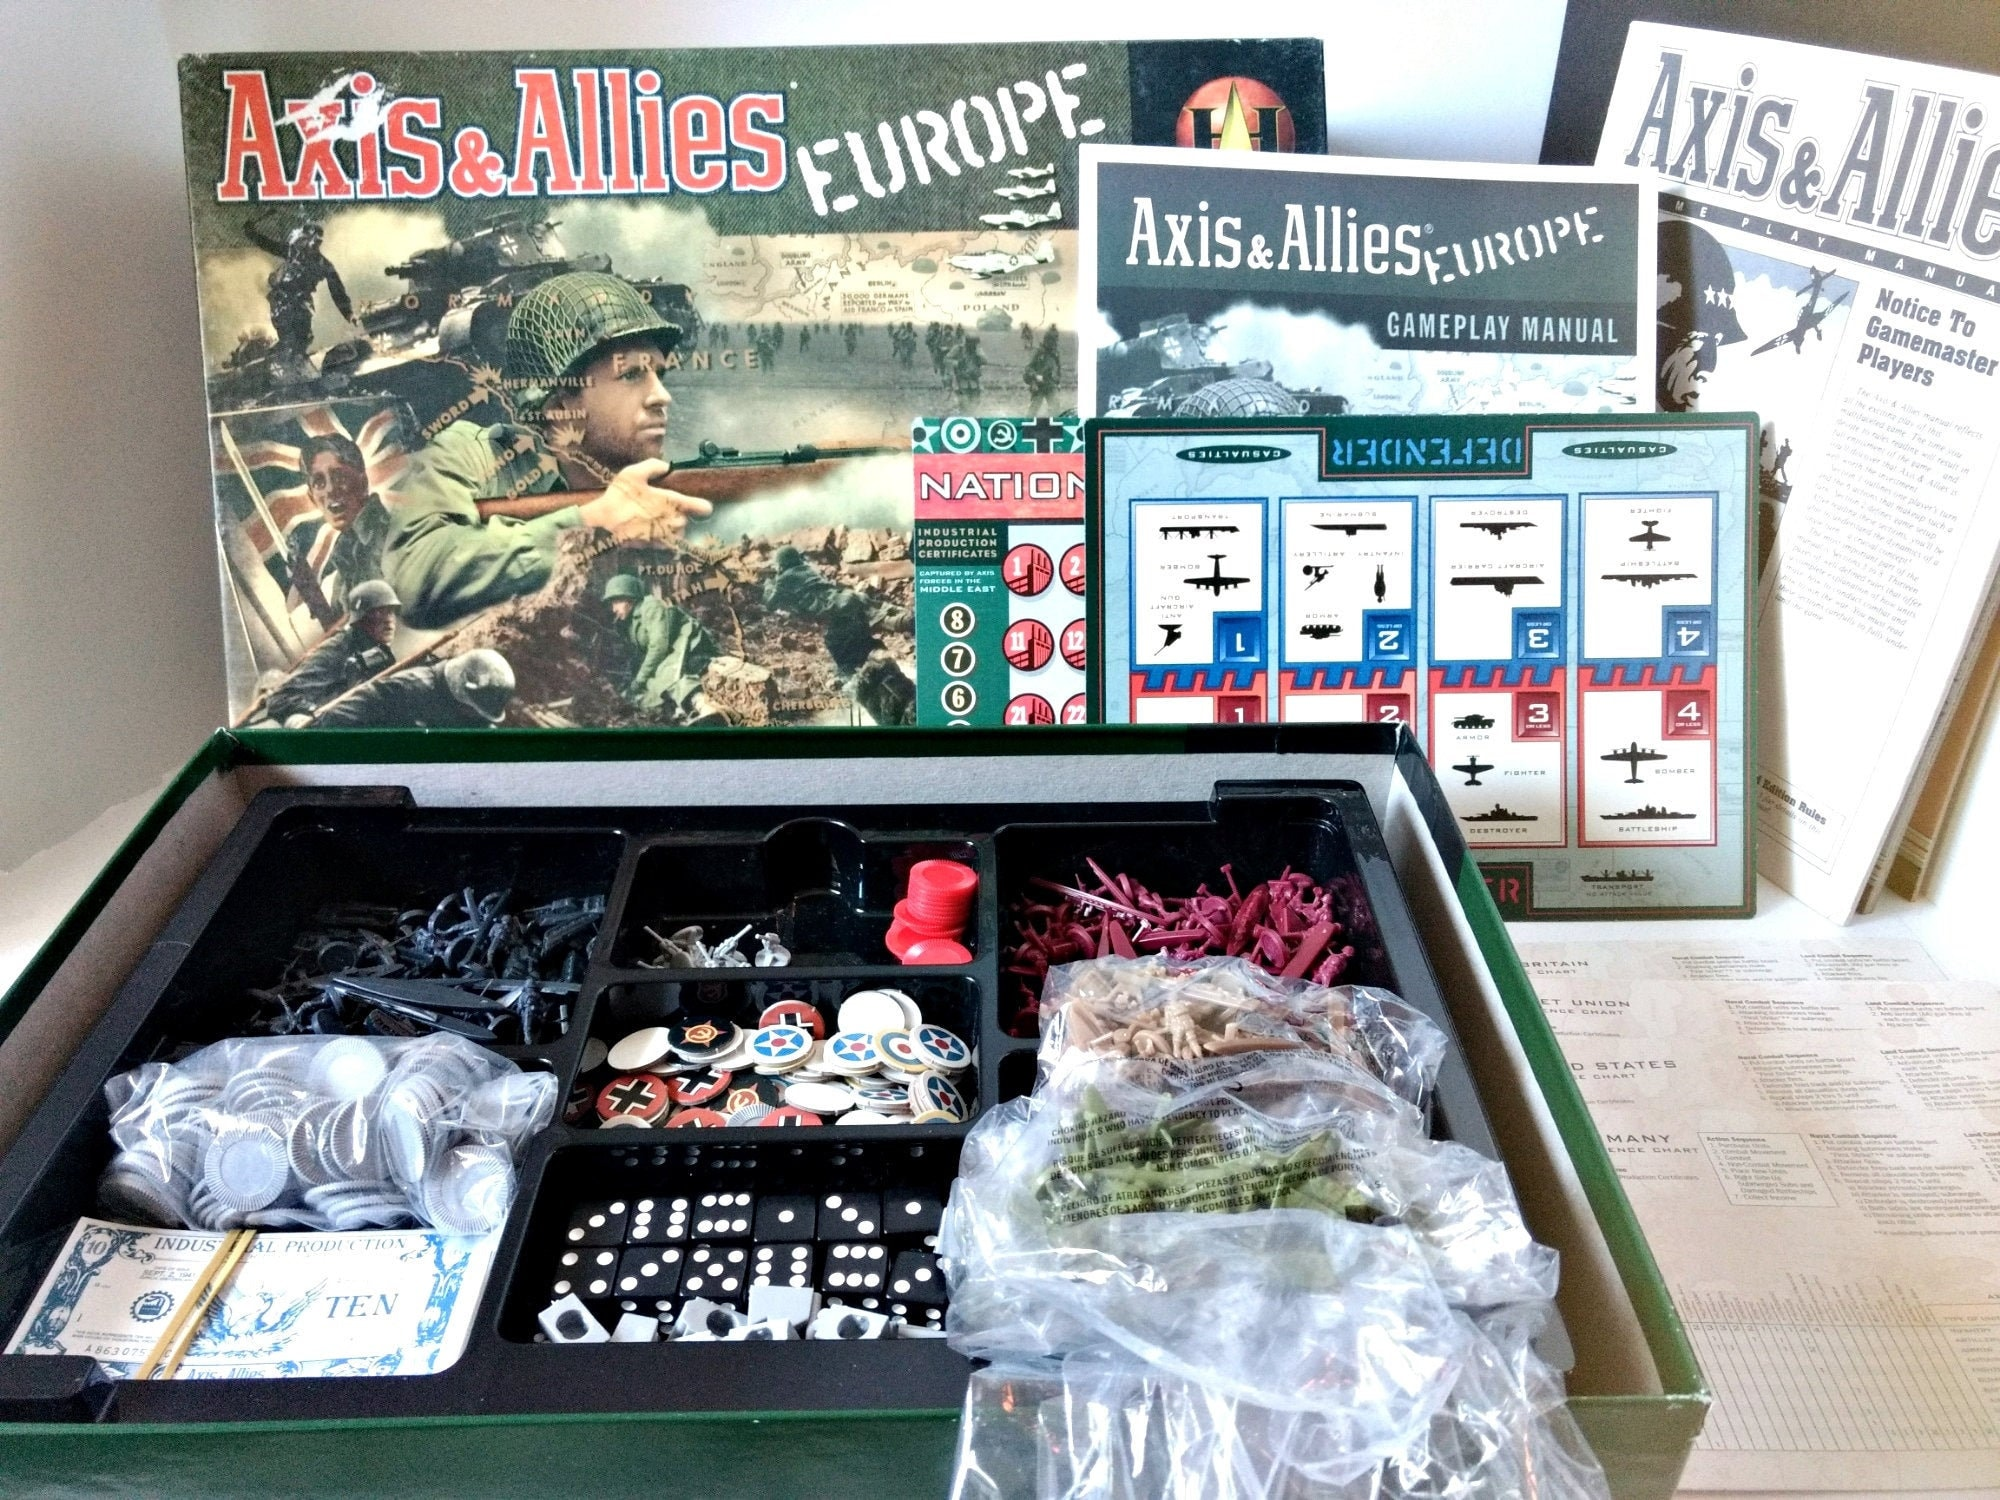 Axis and Allies Europe Ww 11 Board Game Military Strategy 1999 Avallon Hill  Complete w Rule Booklet, game board map, historically accurate